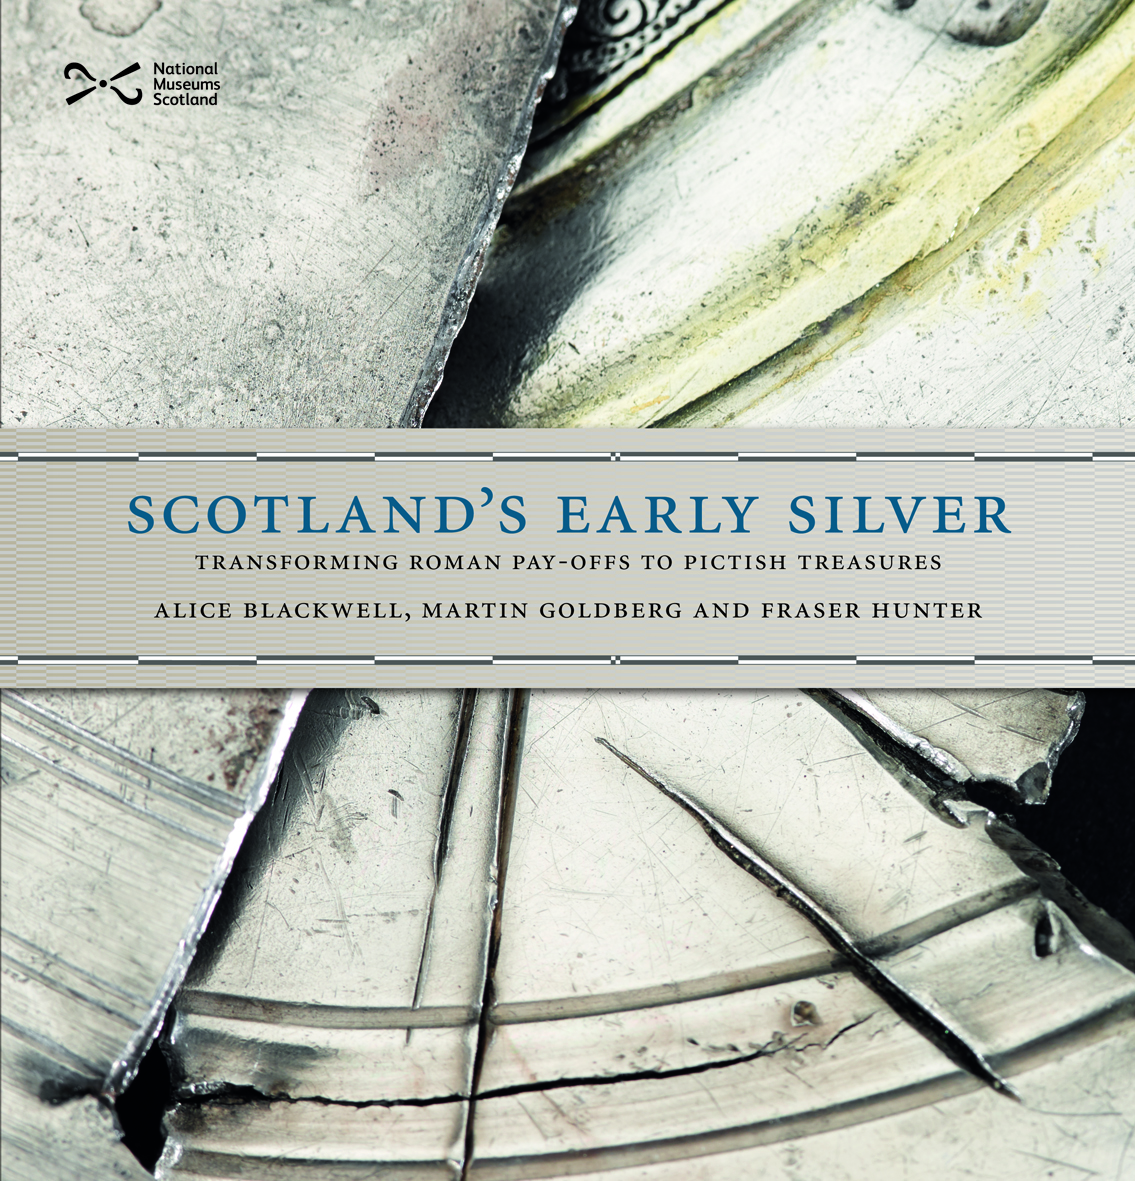 Scotland's Early Silver